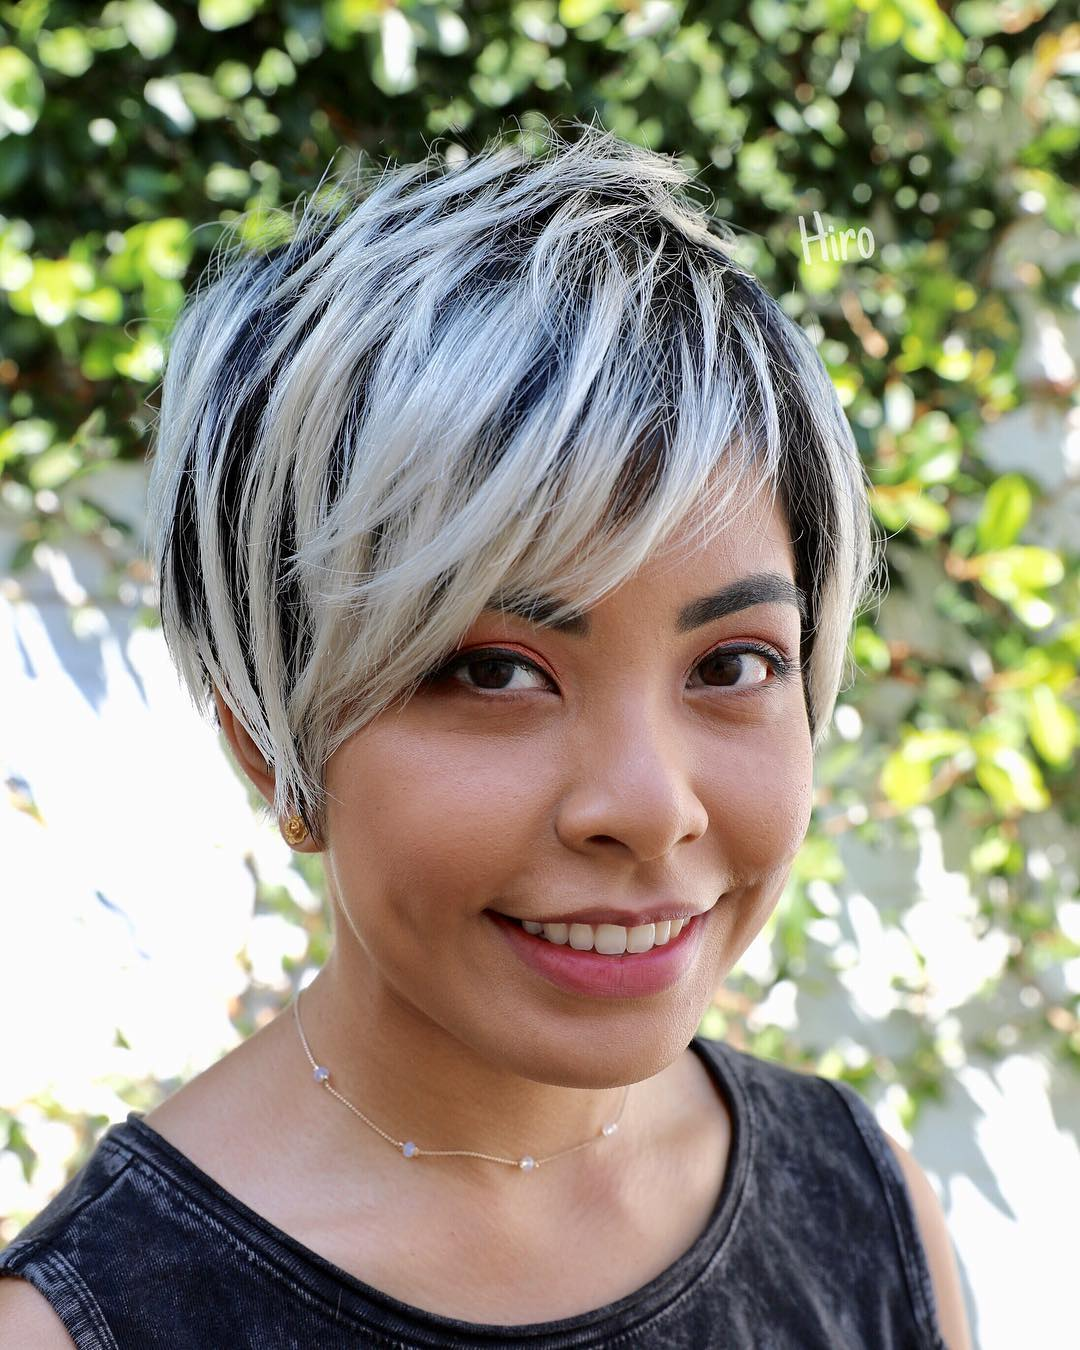 Textured Long Layered Pixie with Asymmetrical Side Swept Bangs and Platinum Blonde Highlights on Black Hair Short Summer Hairstyle